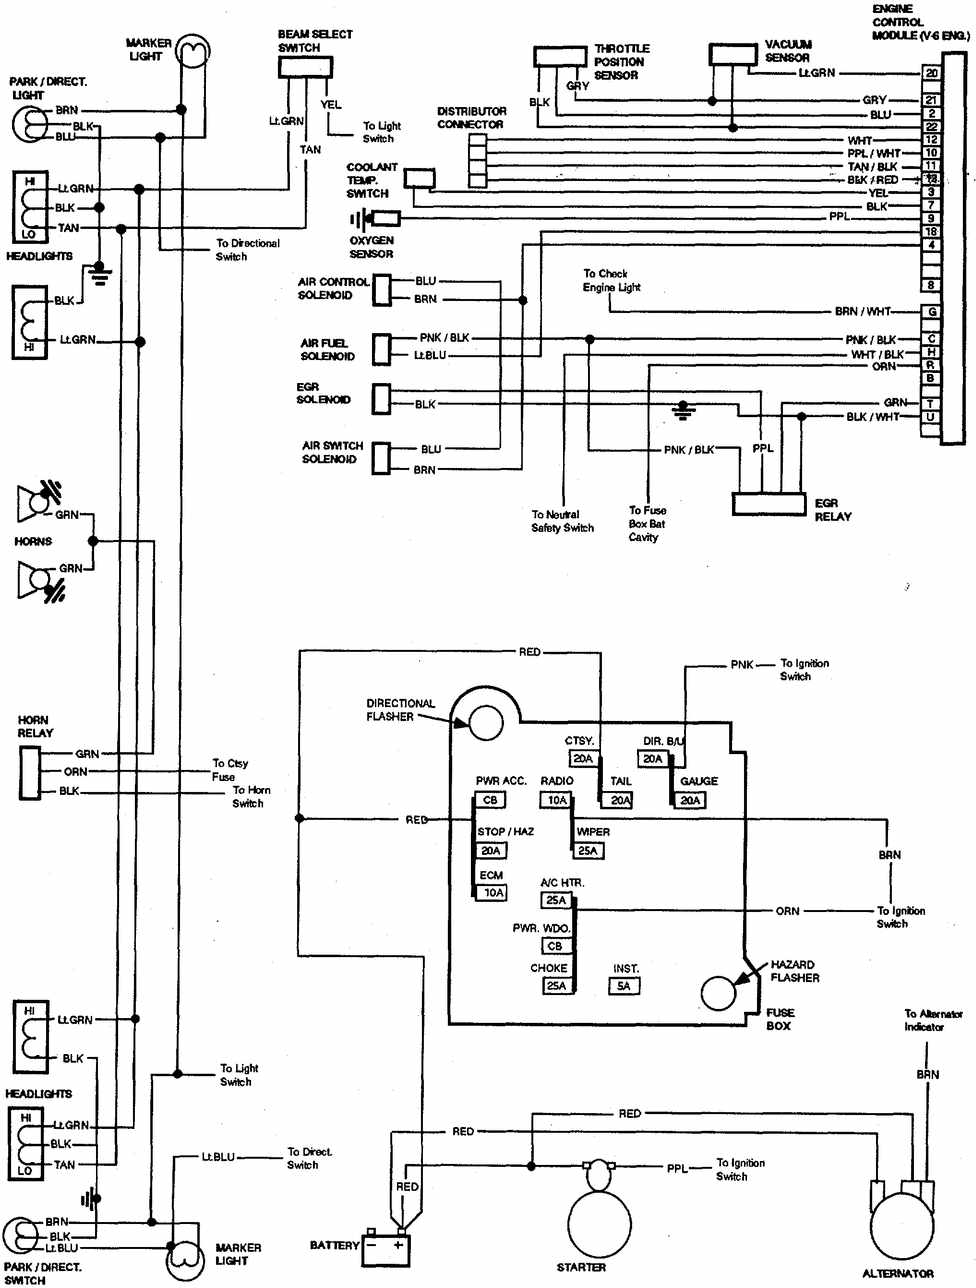 radio wiring diagram 97 dodge dakota